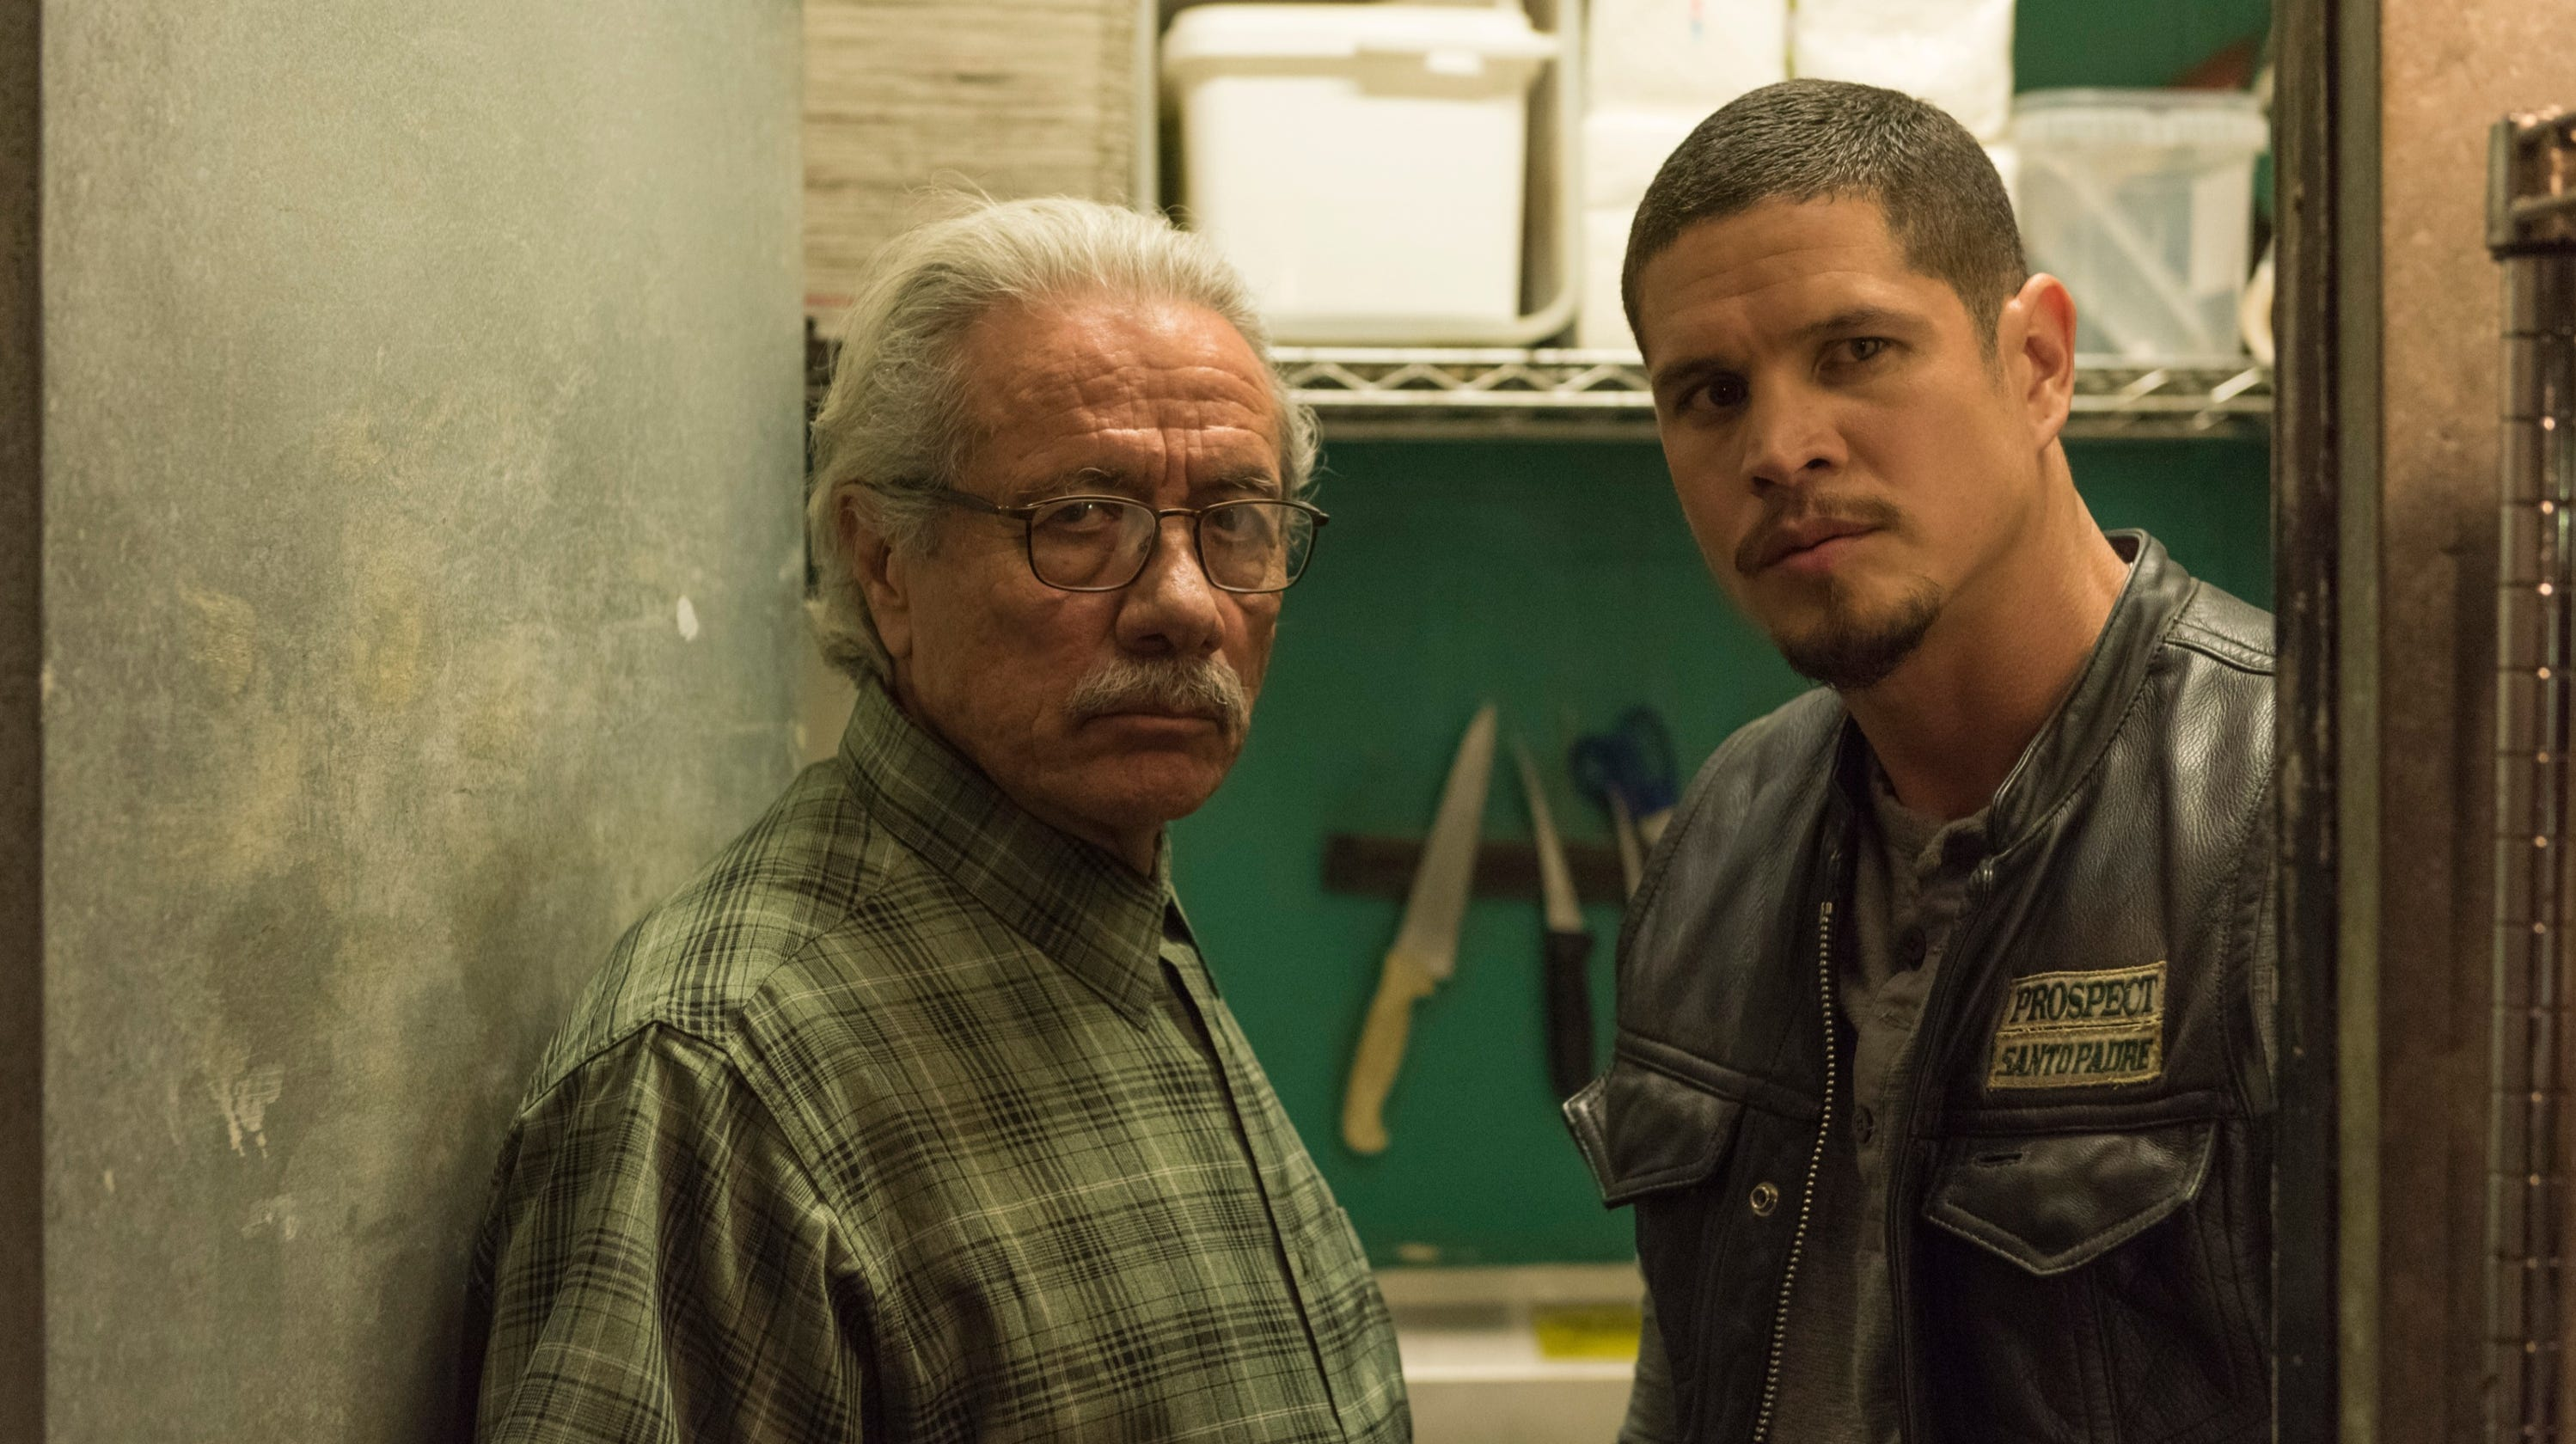 Sons of Anarchy' spinoff 'Mayans M C ' follows Latino motorcycle club